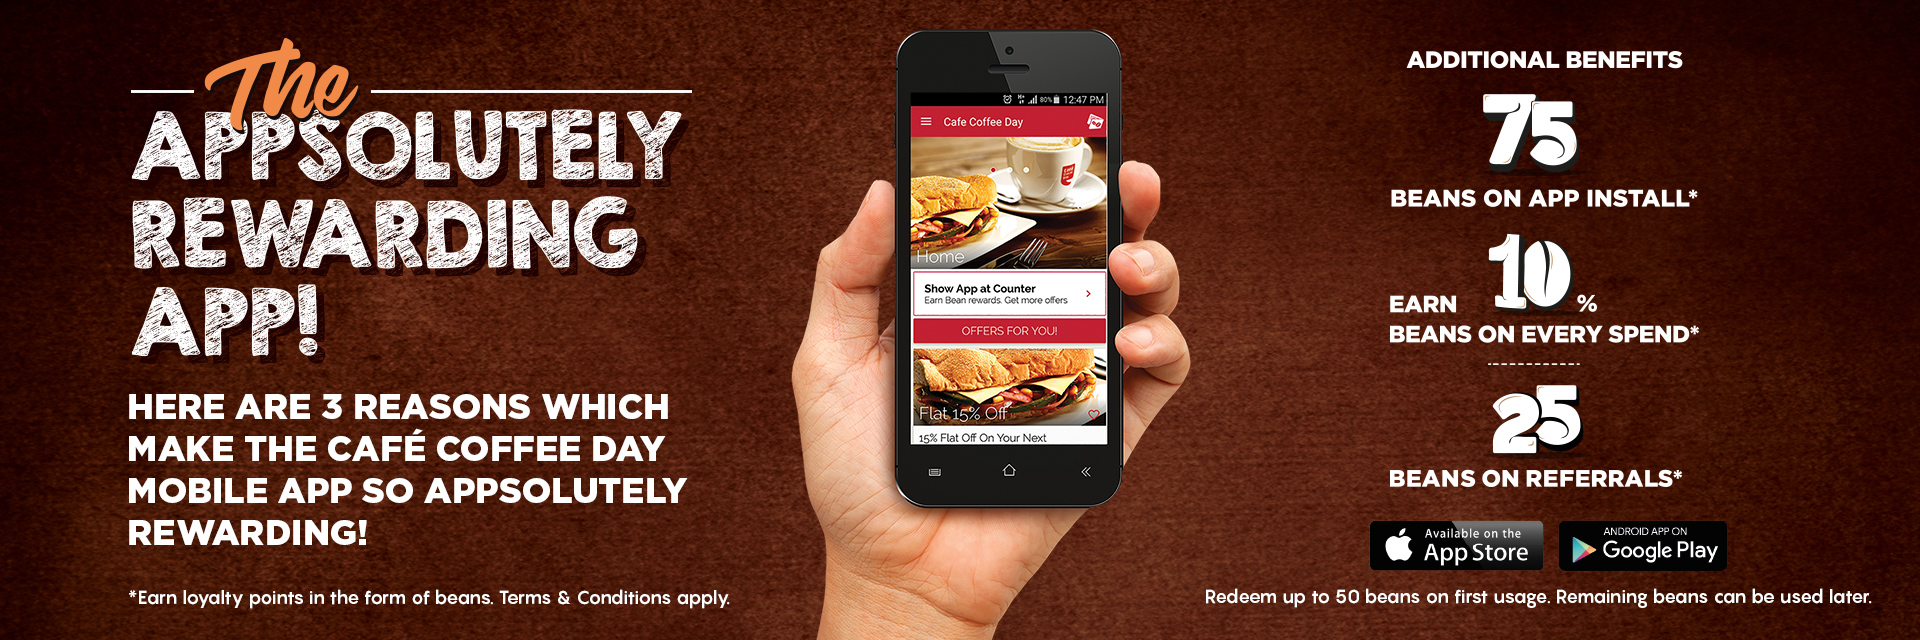 Café Coffe Day Rewards App